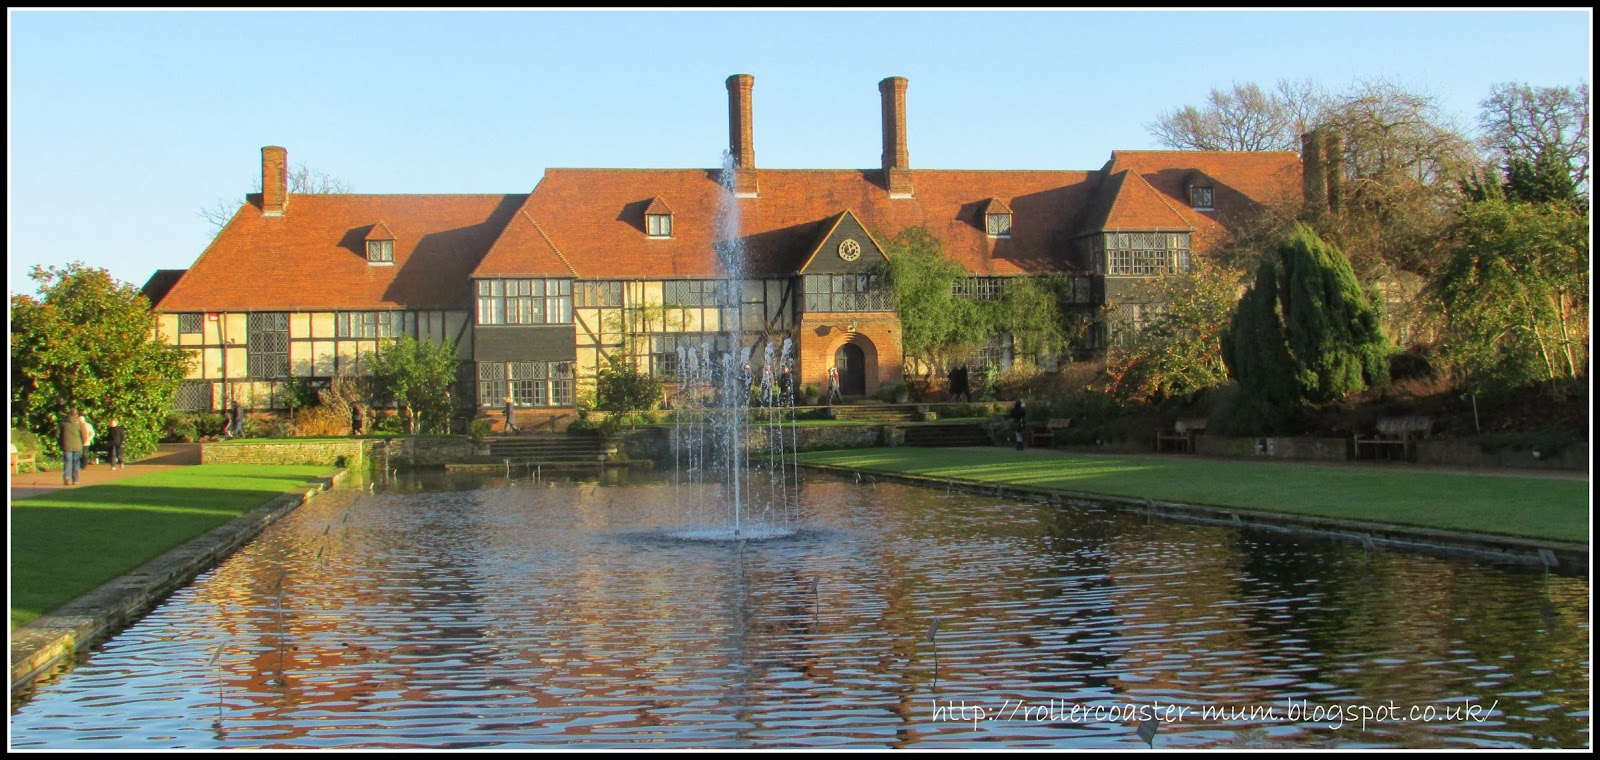 house and canal at RHS Wisley